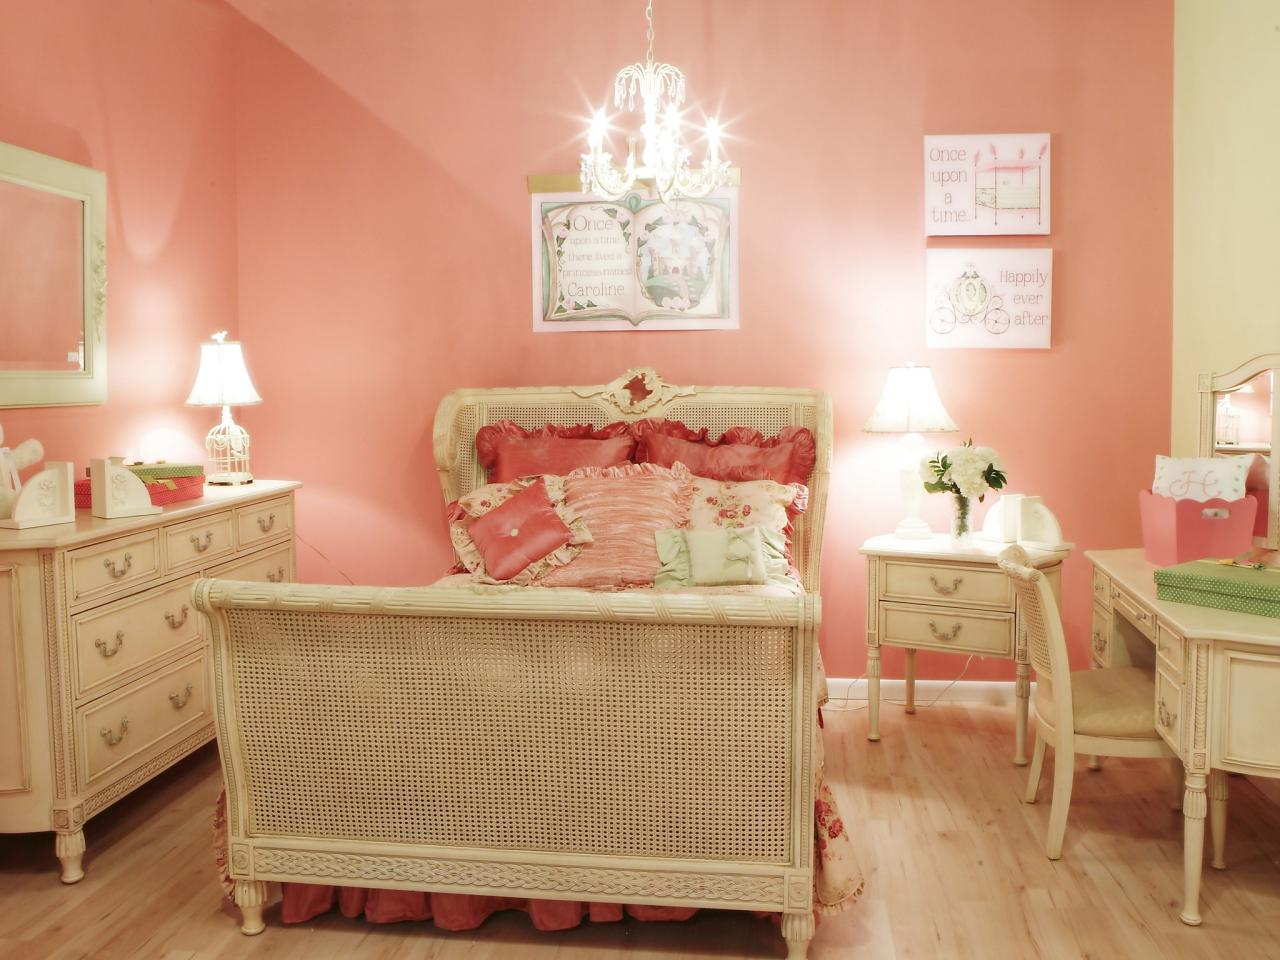 What color to paint your bedroom?